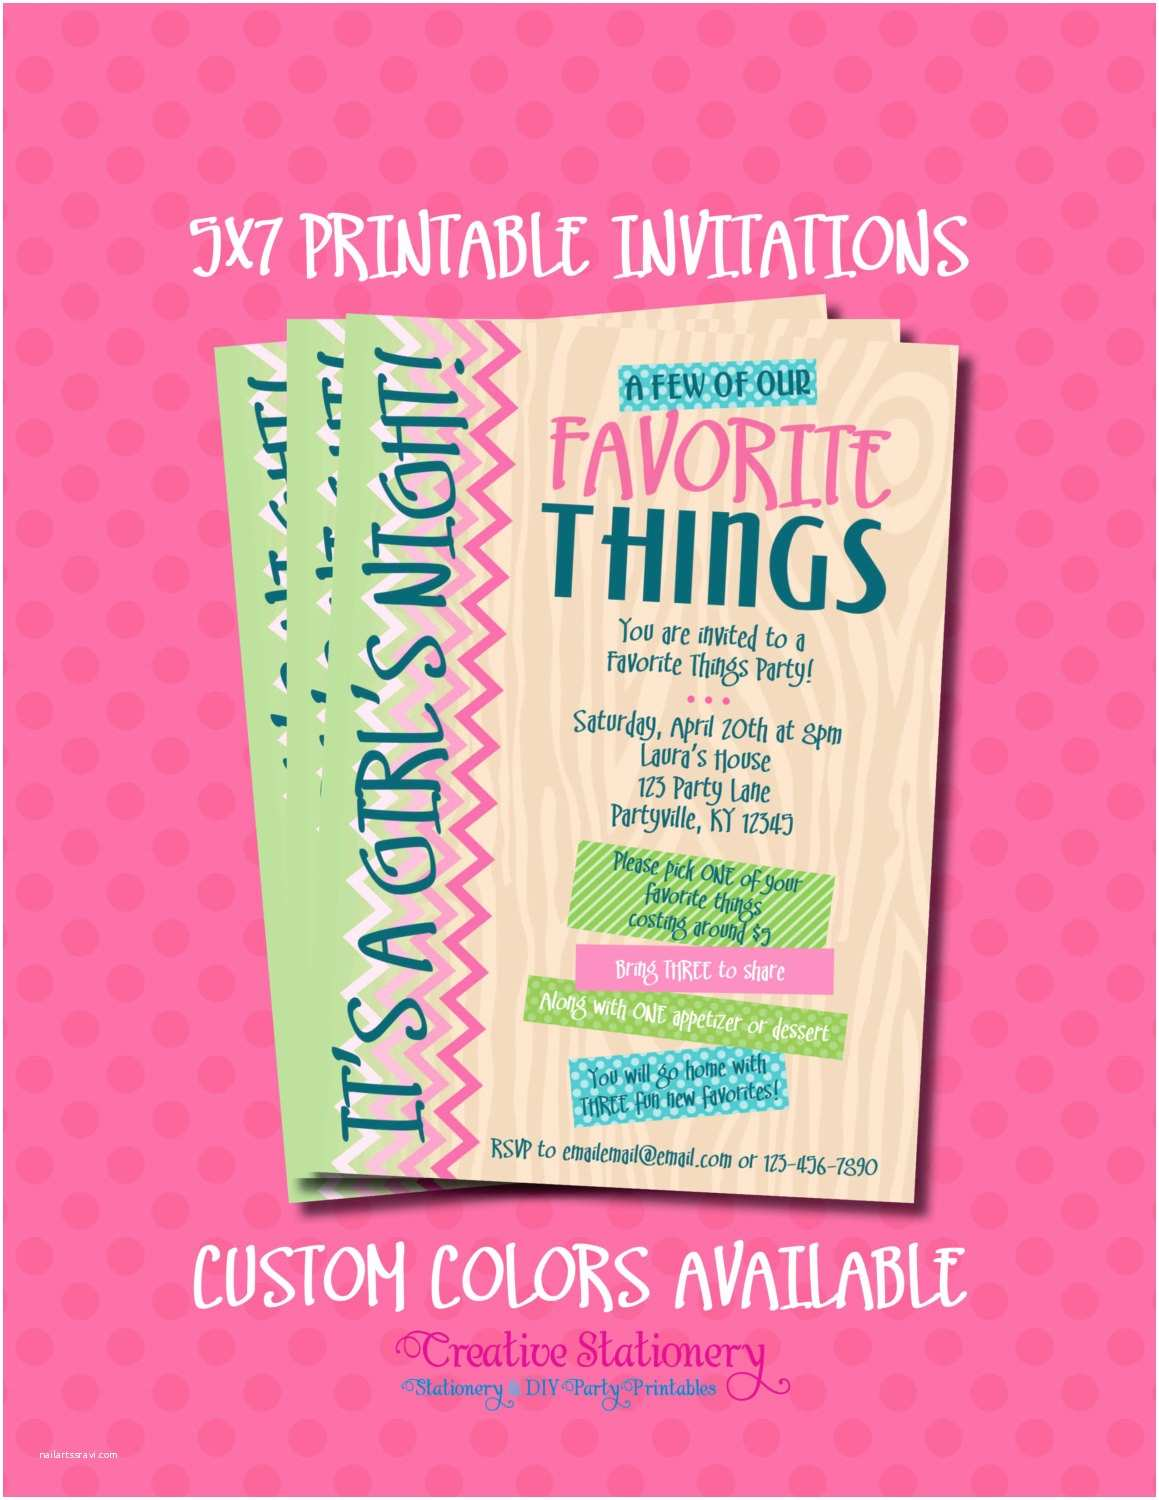 Favorite Things Party Invitation Favorite Things Party Invitations Printable by